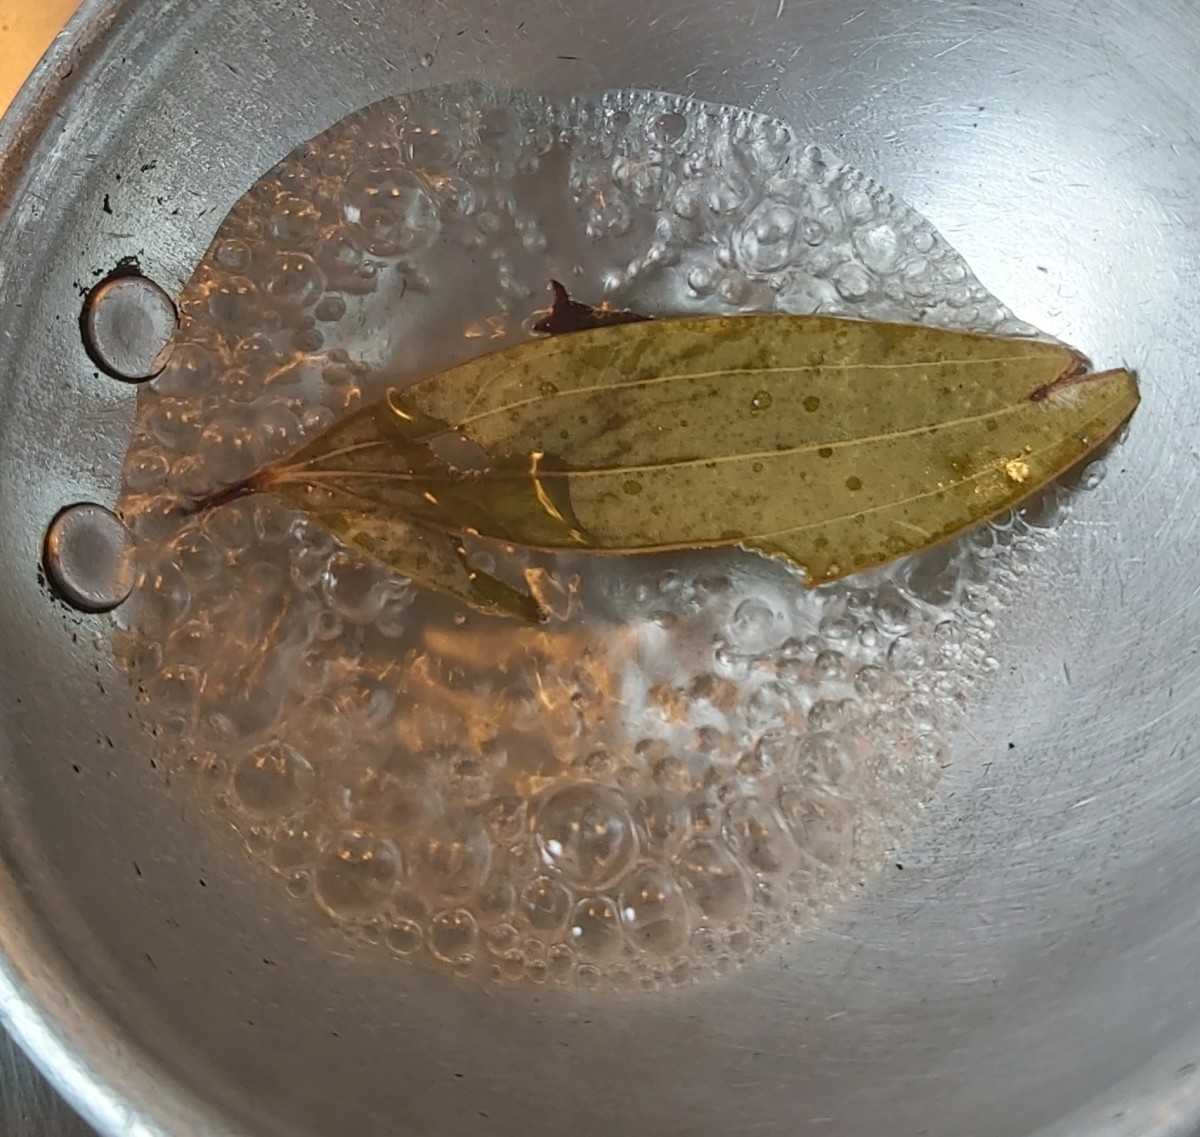 Add 1-2 bay leaves and 1-2 cloves. Keep the heat low.